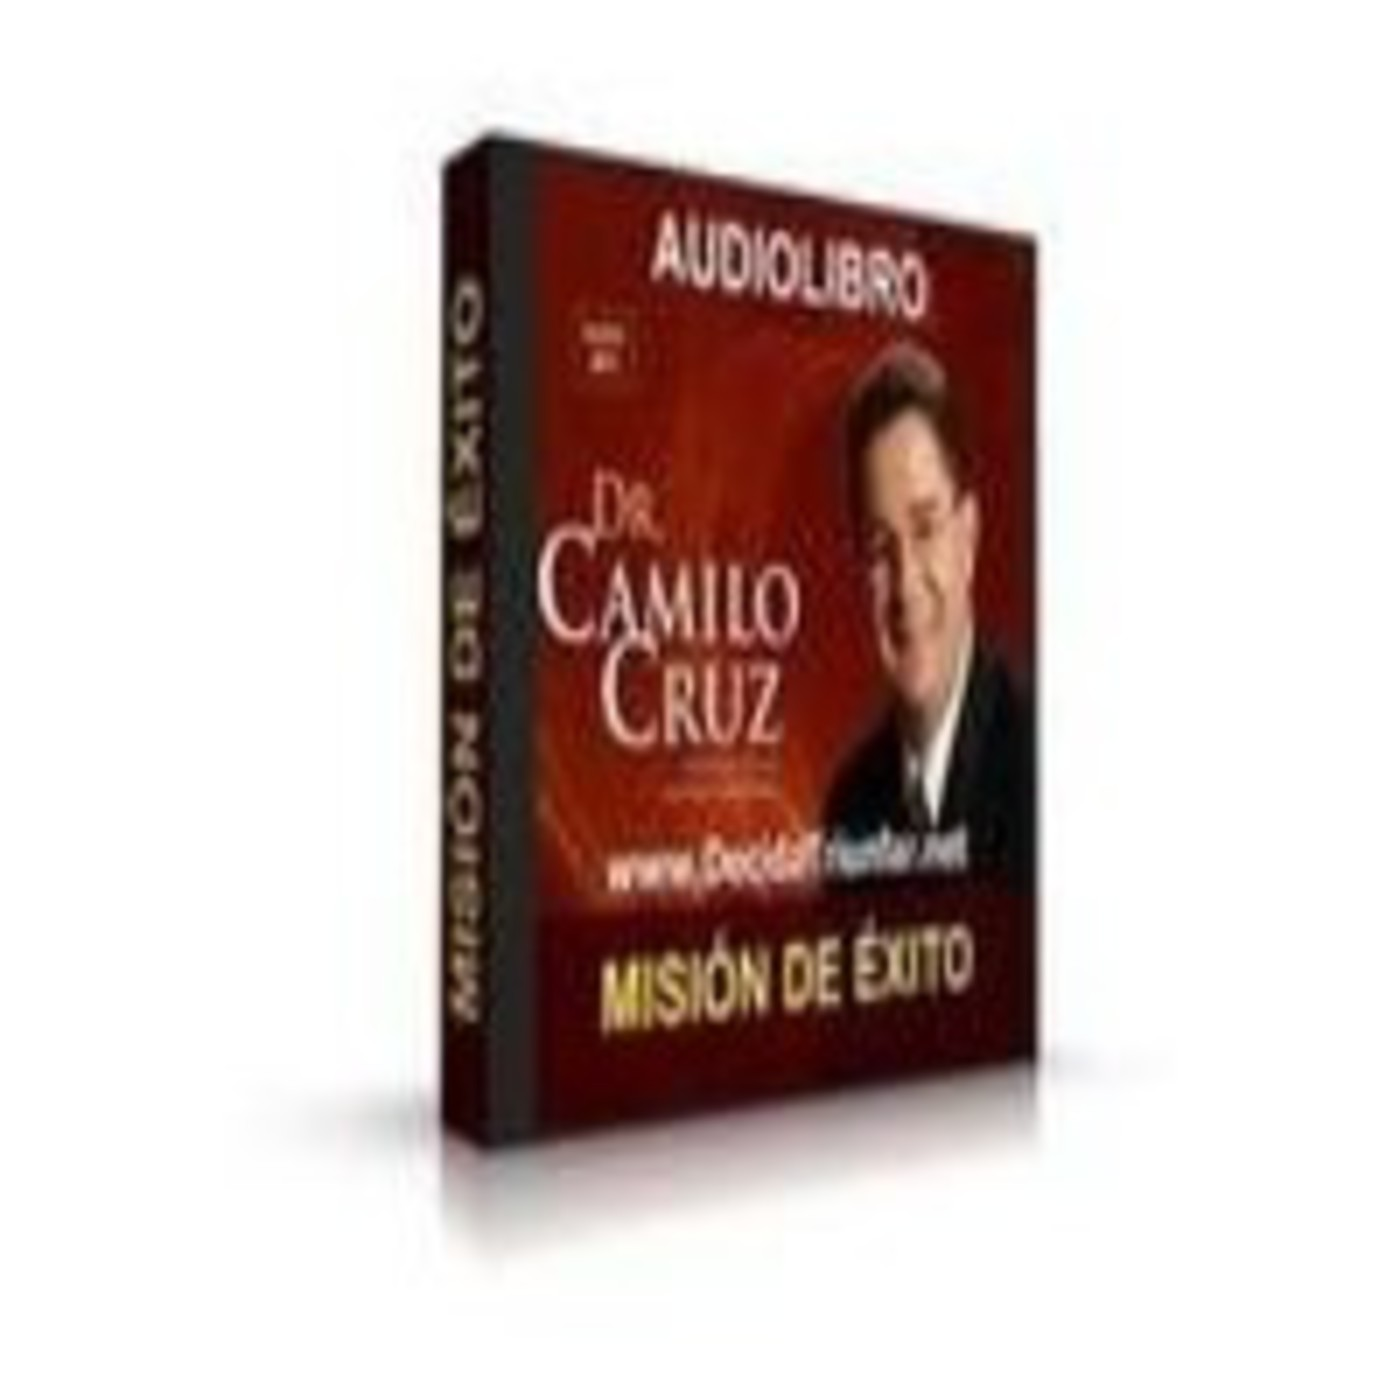 Libro Exito Audio Libro Misión Éxito Dr Camilo Cruz En God Is Good